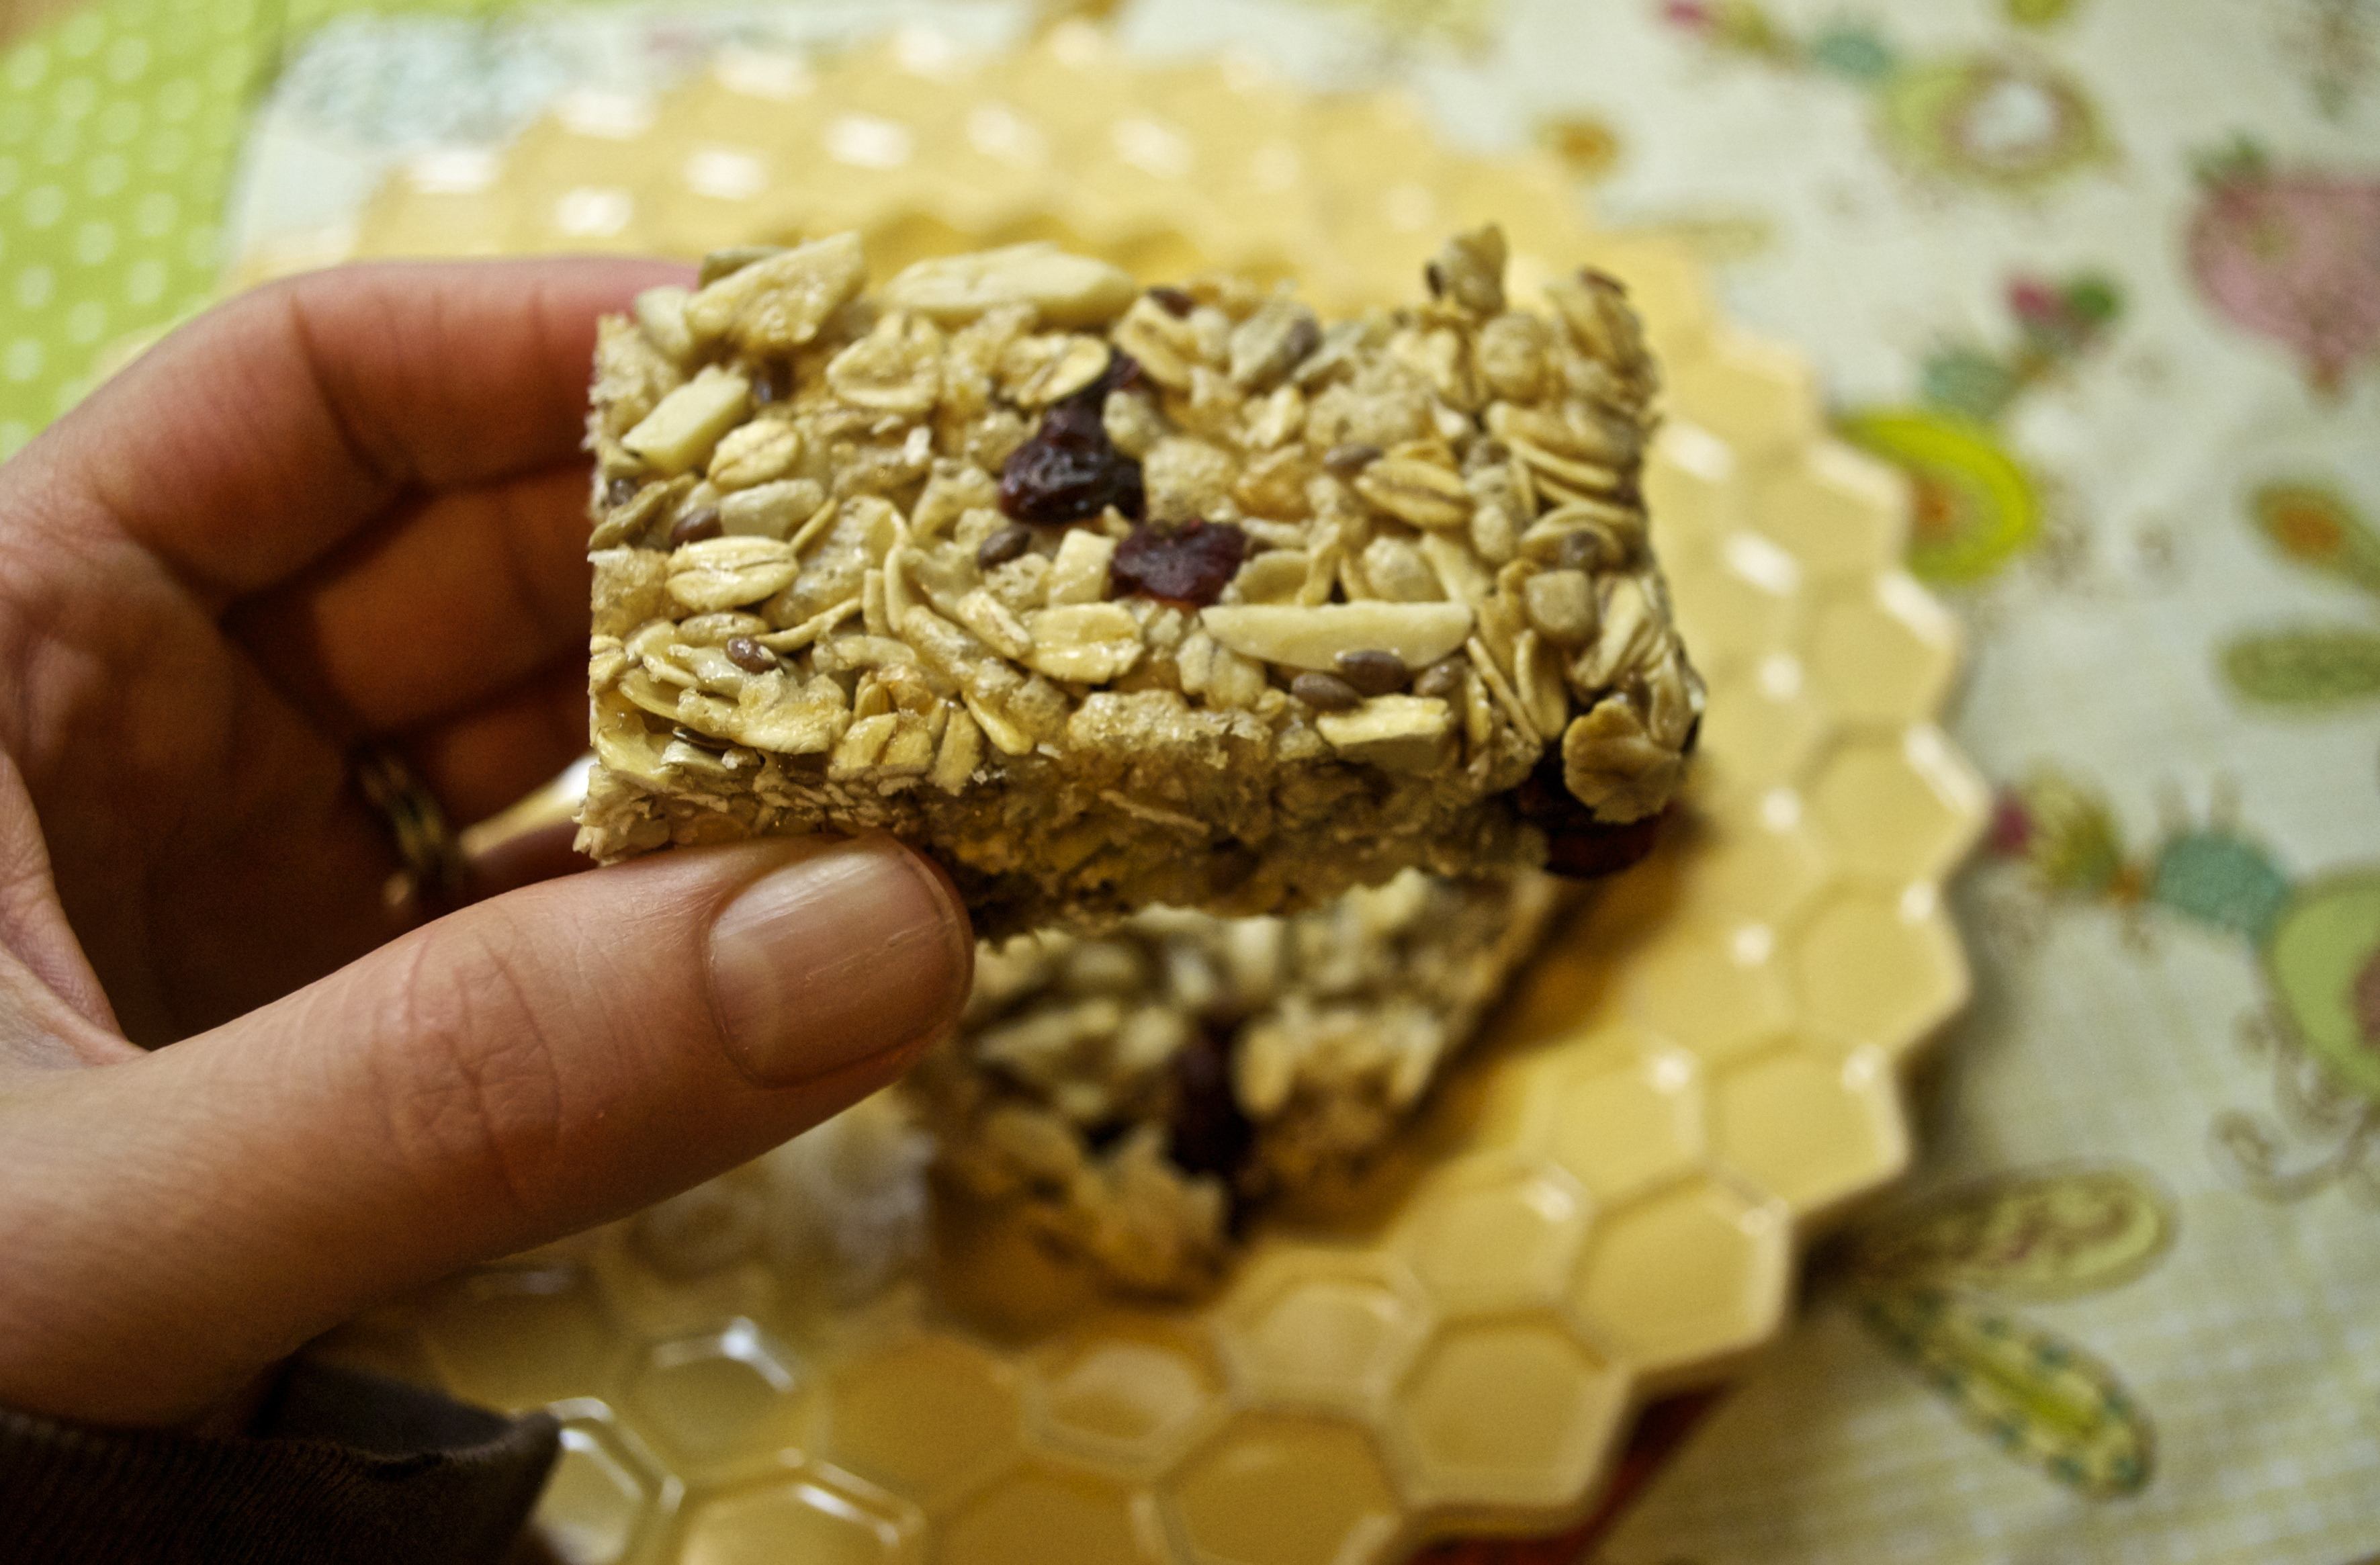 ... crunch: tinkering with homemade granola bars | Attempts in Domesticity